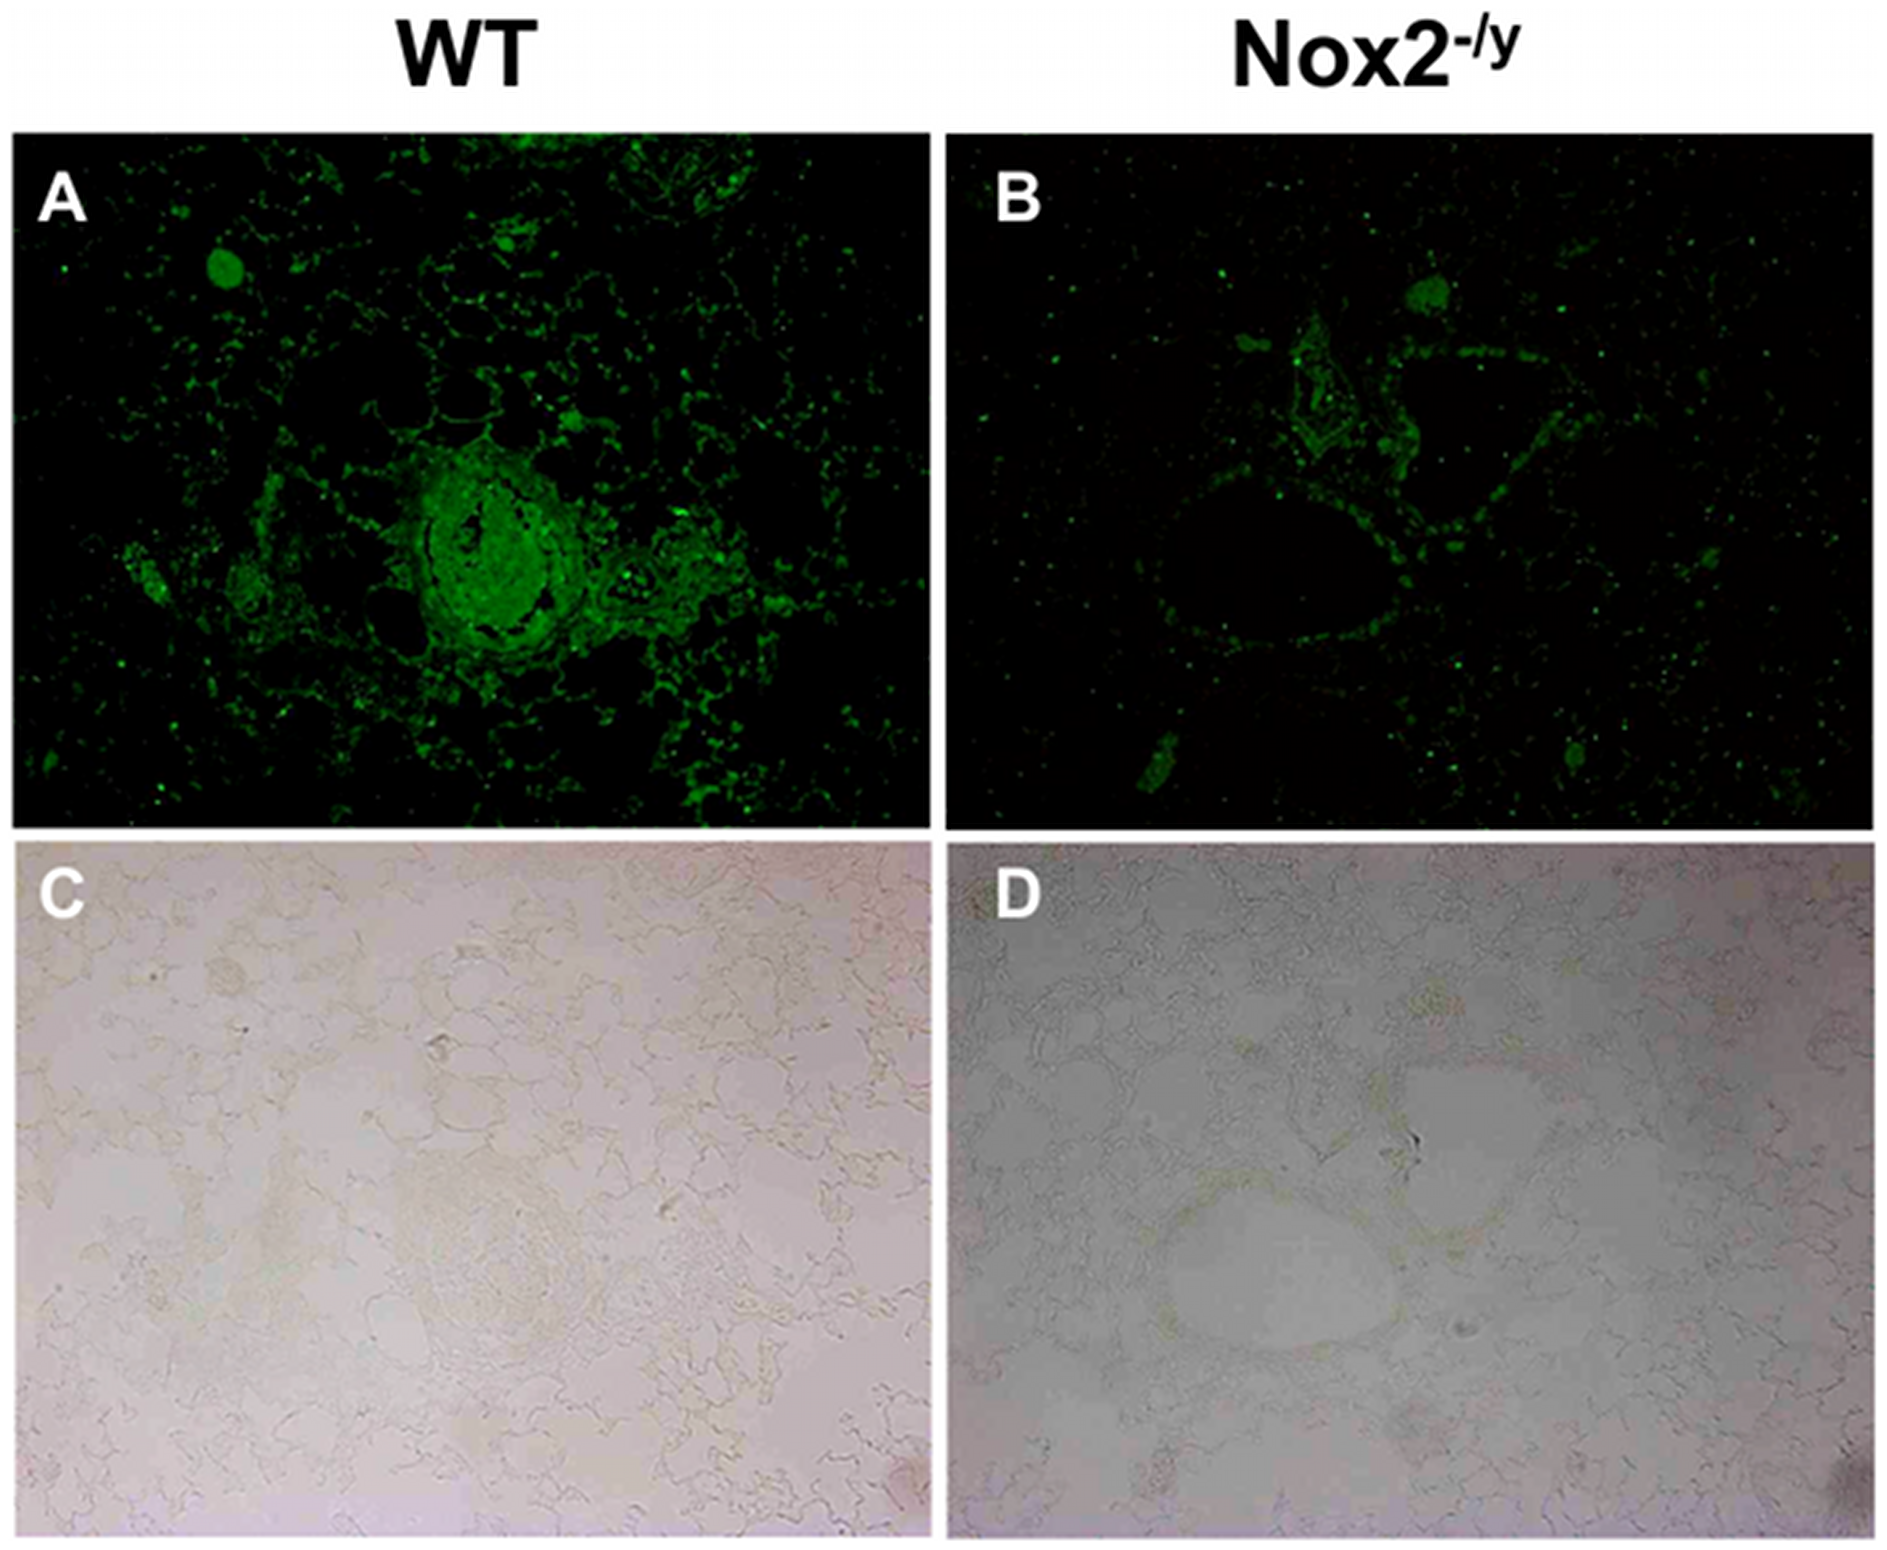 Peroxynitrite production in mouse lung infected with H3N2 (X-31) influenza A virus using 3-nitrotyrosine (3-NT) immunofluorescence.